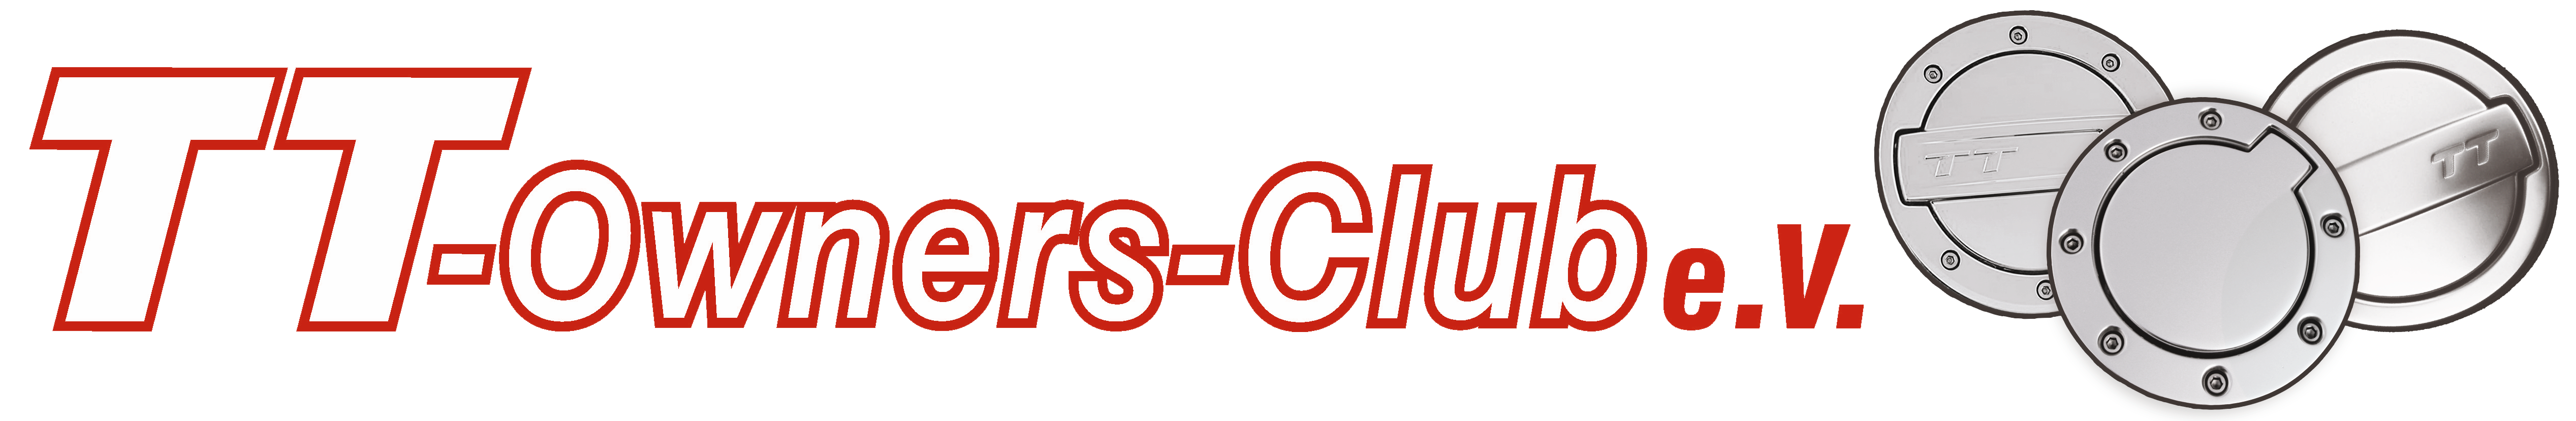 tt-owners-club.net